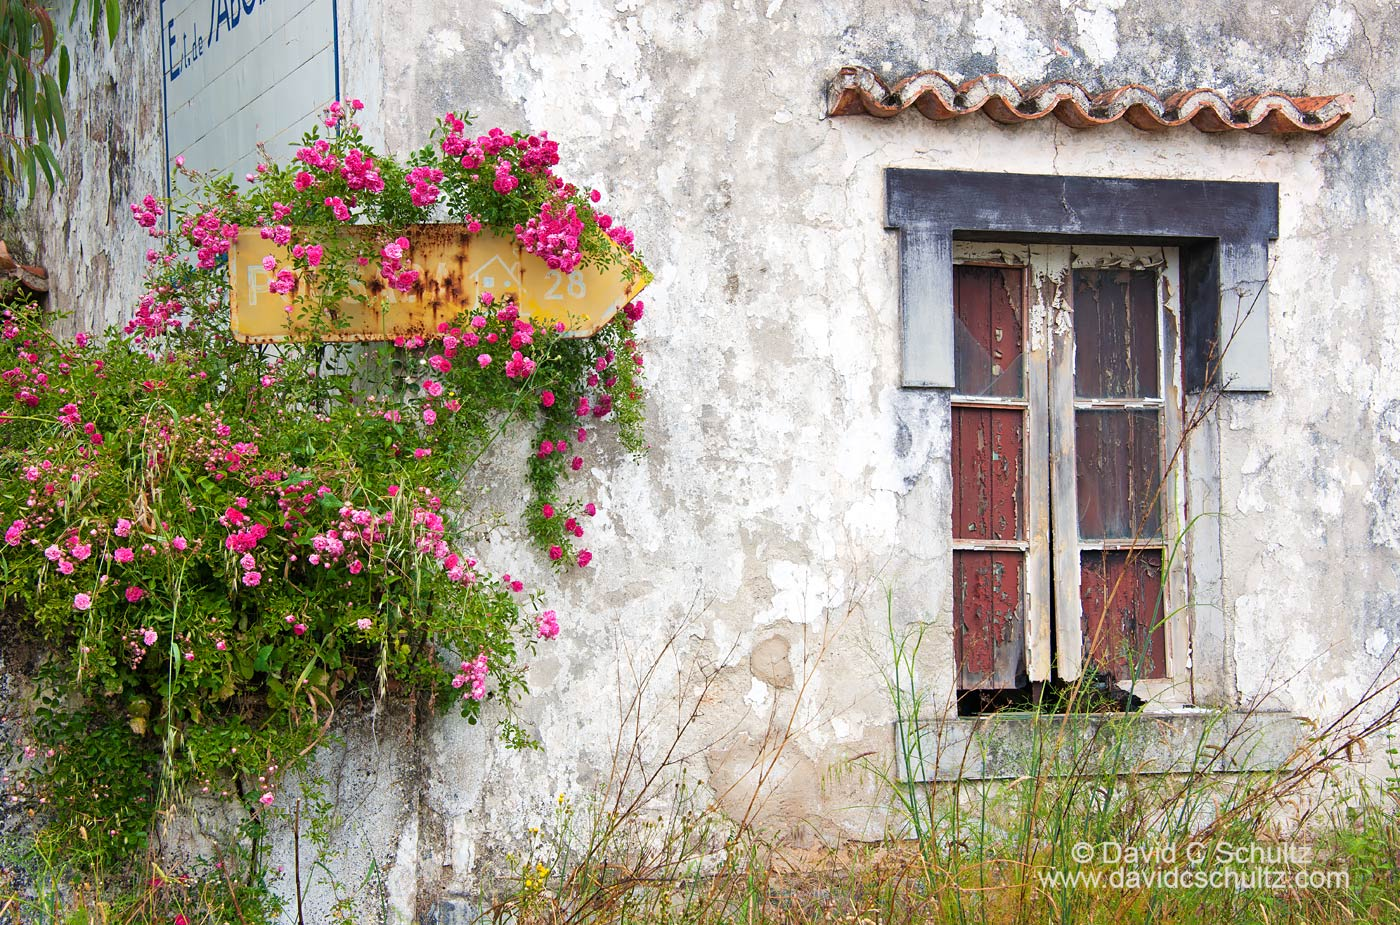 Portugal - Image #203-668